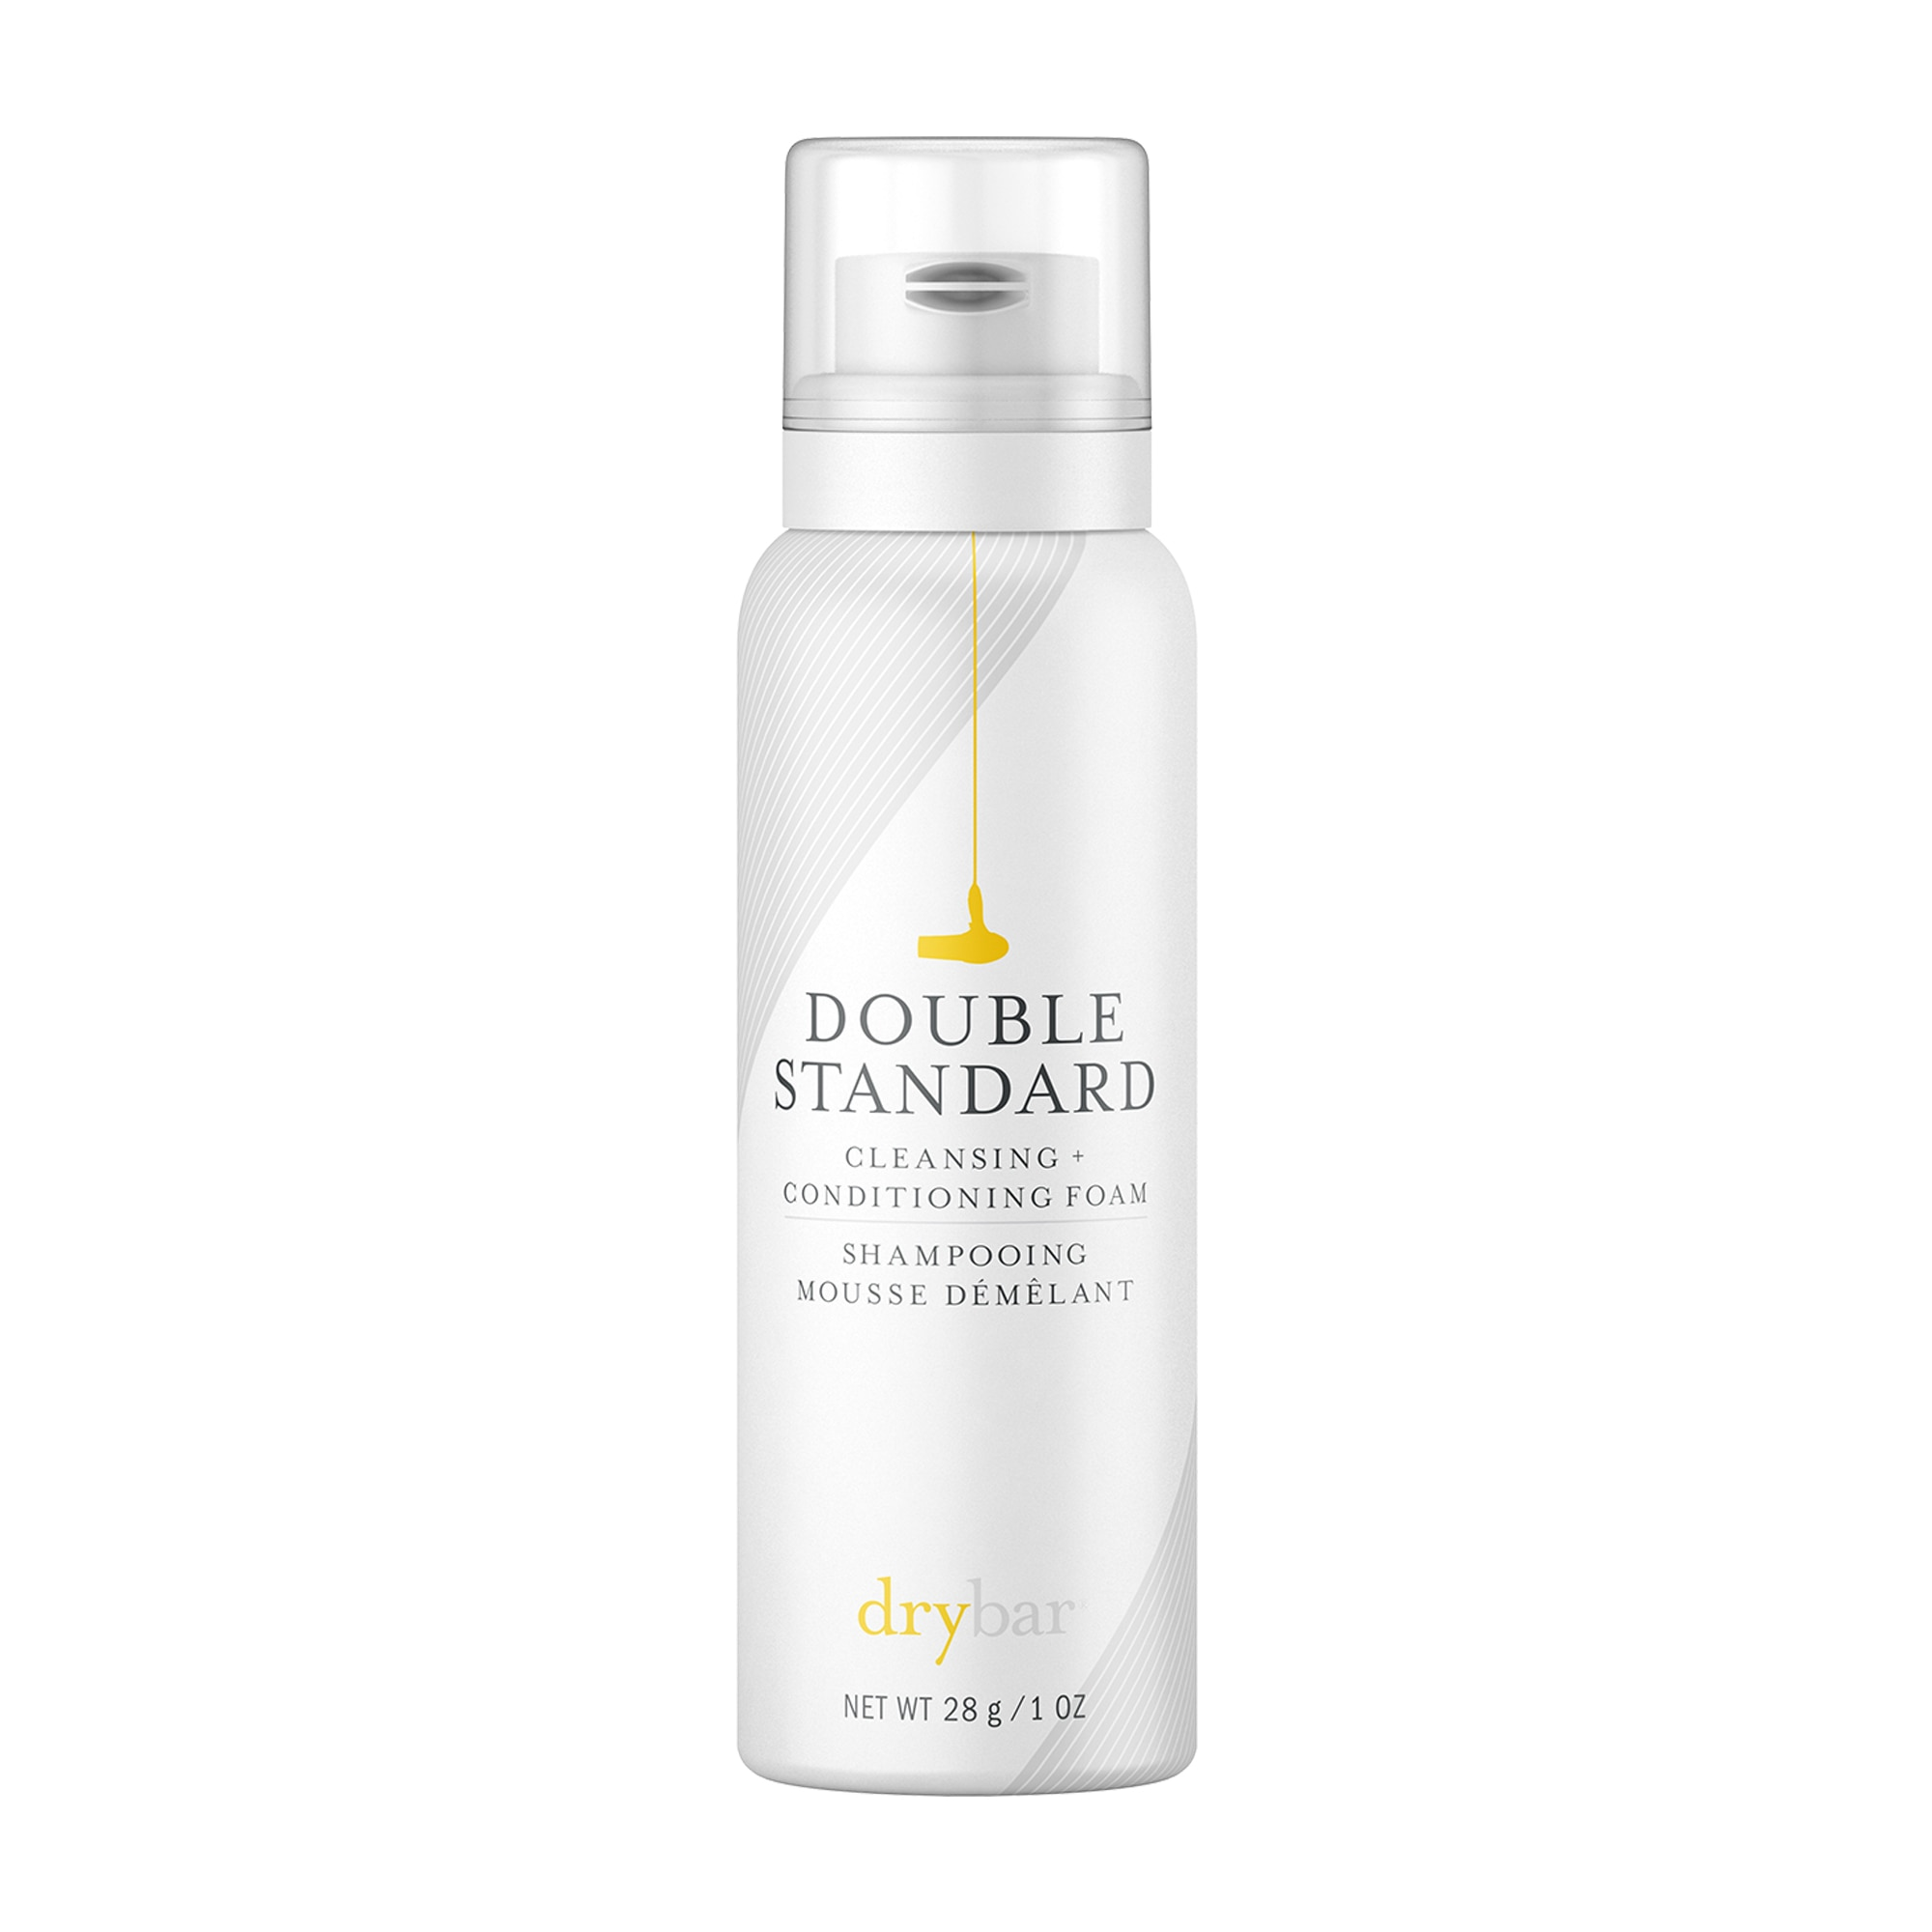 DOUBLE STANDARD CLEANSING + CONDITIONING FOAM